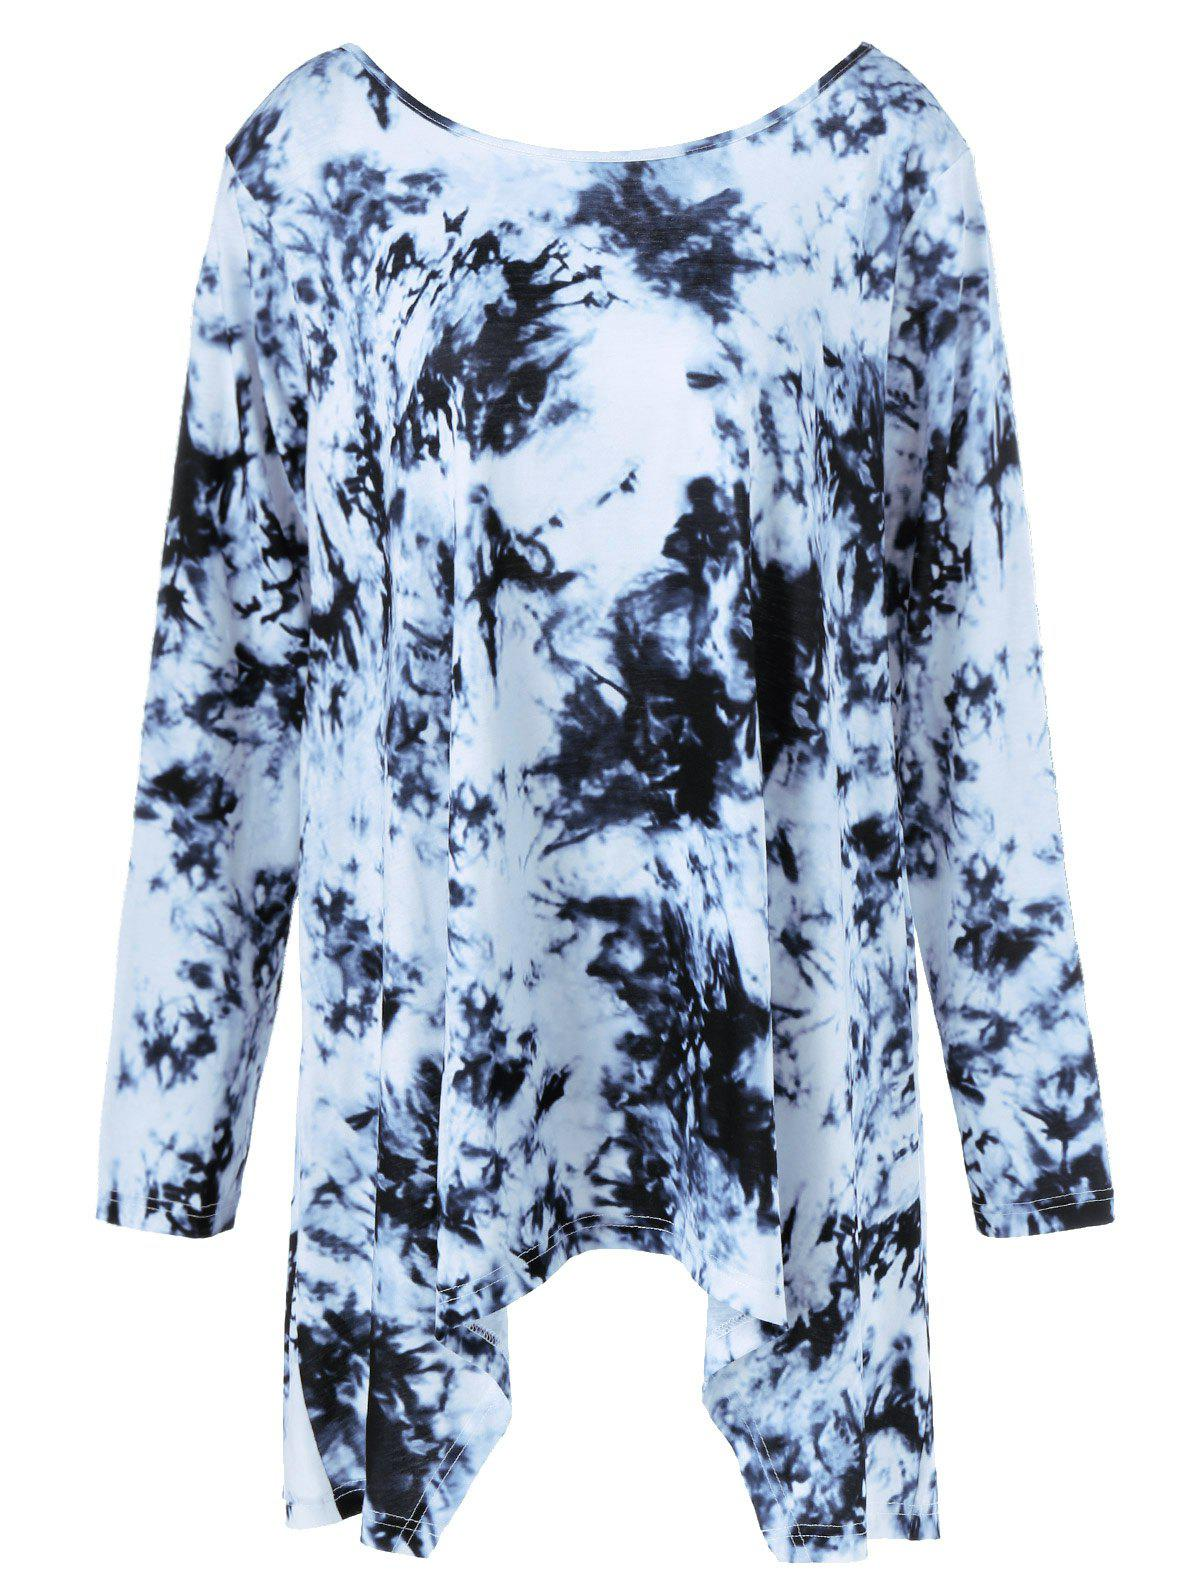 New Plus Size Criss-Cross Tie-Dyed T-Shirt